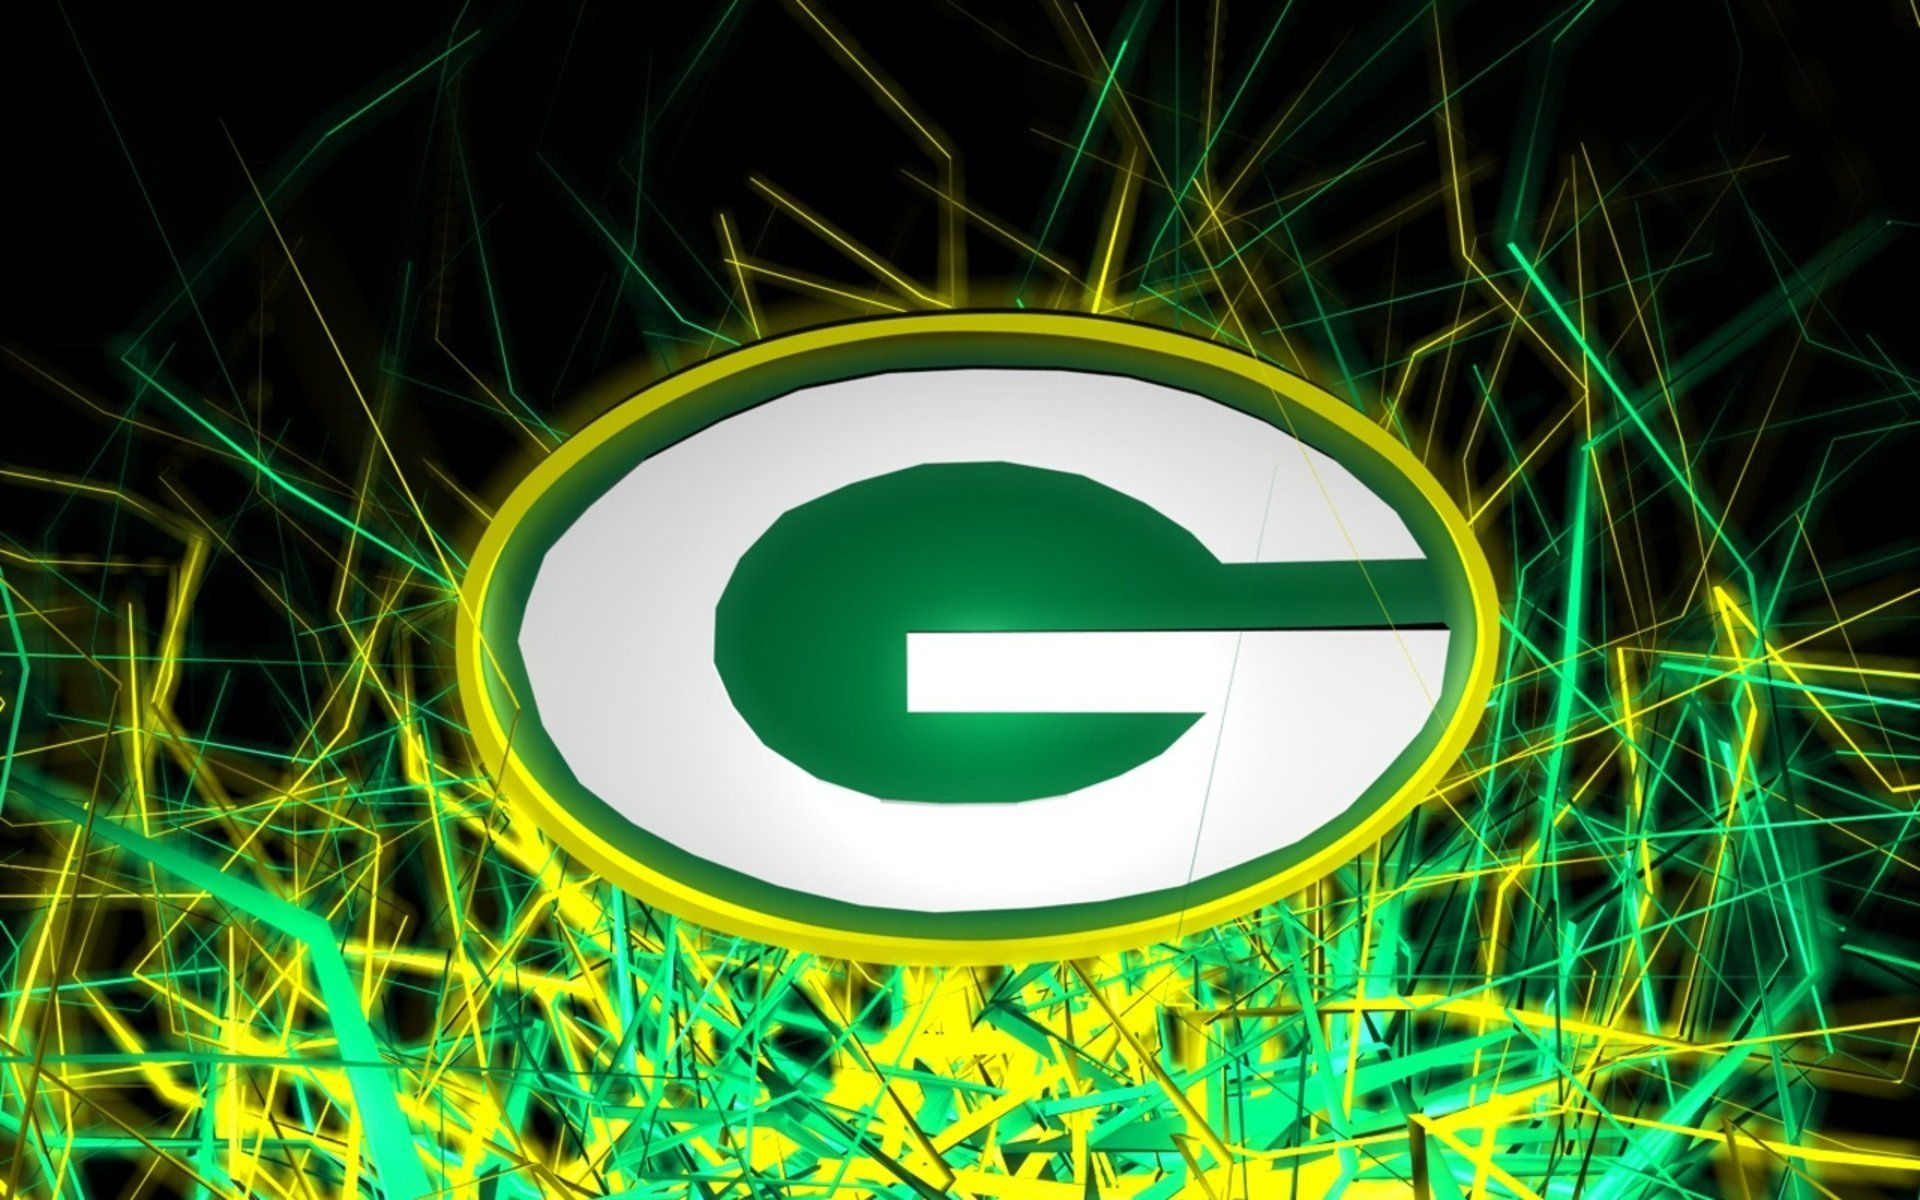 Wallpaper Of Green Bay Packers Wallpaper for Mobile 1600